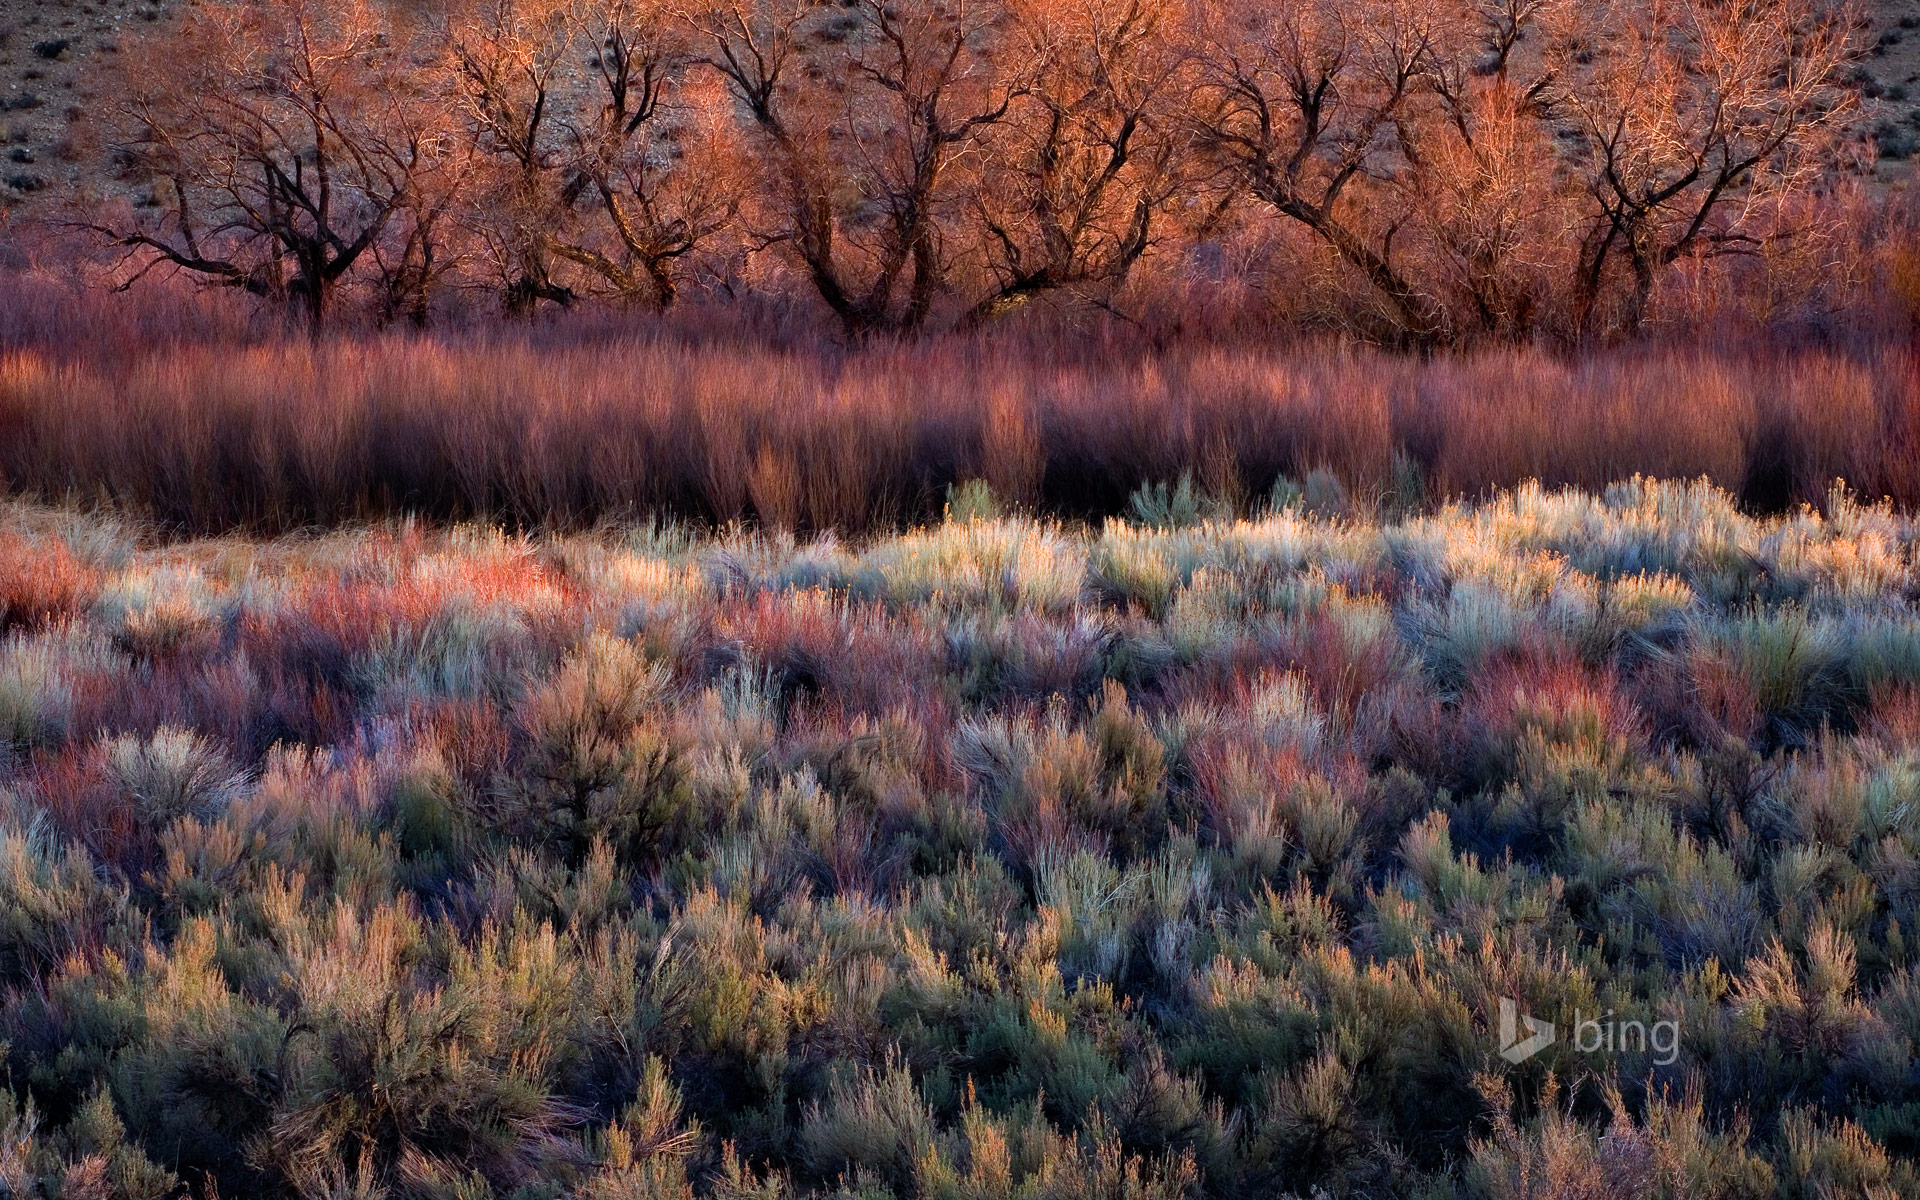 Foliage, including cottonwoods, willows, sage, and rabbitbrush, in California's Owens Valley